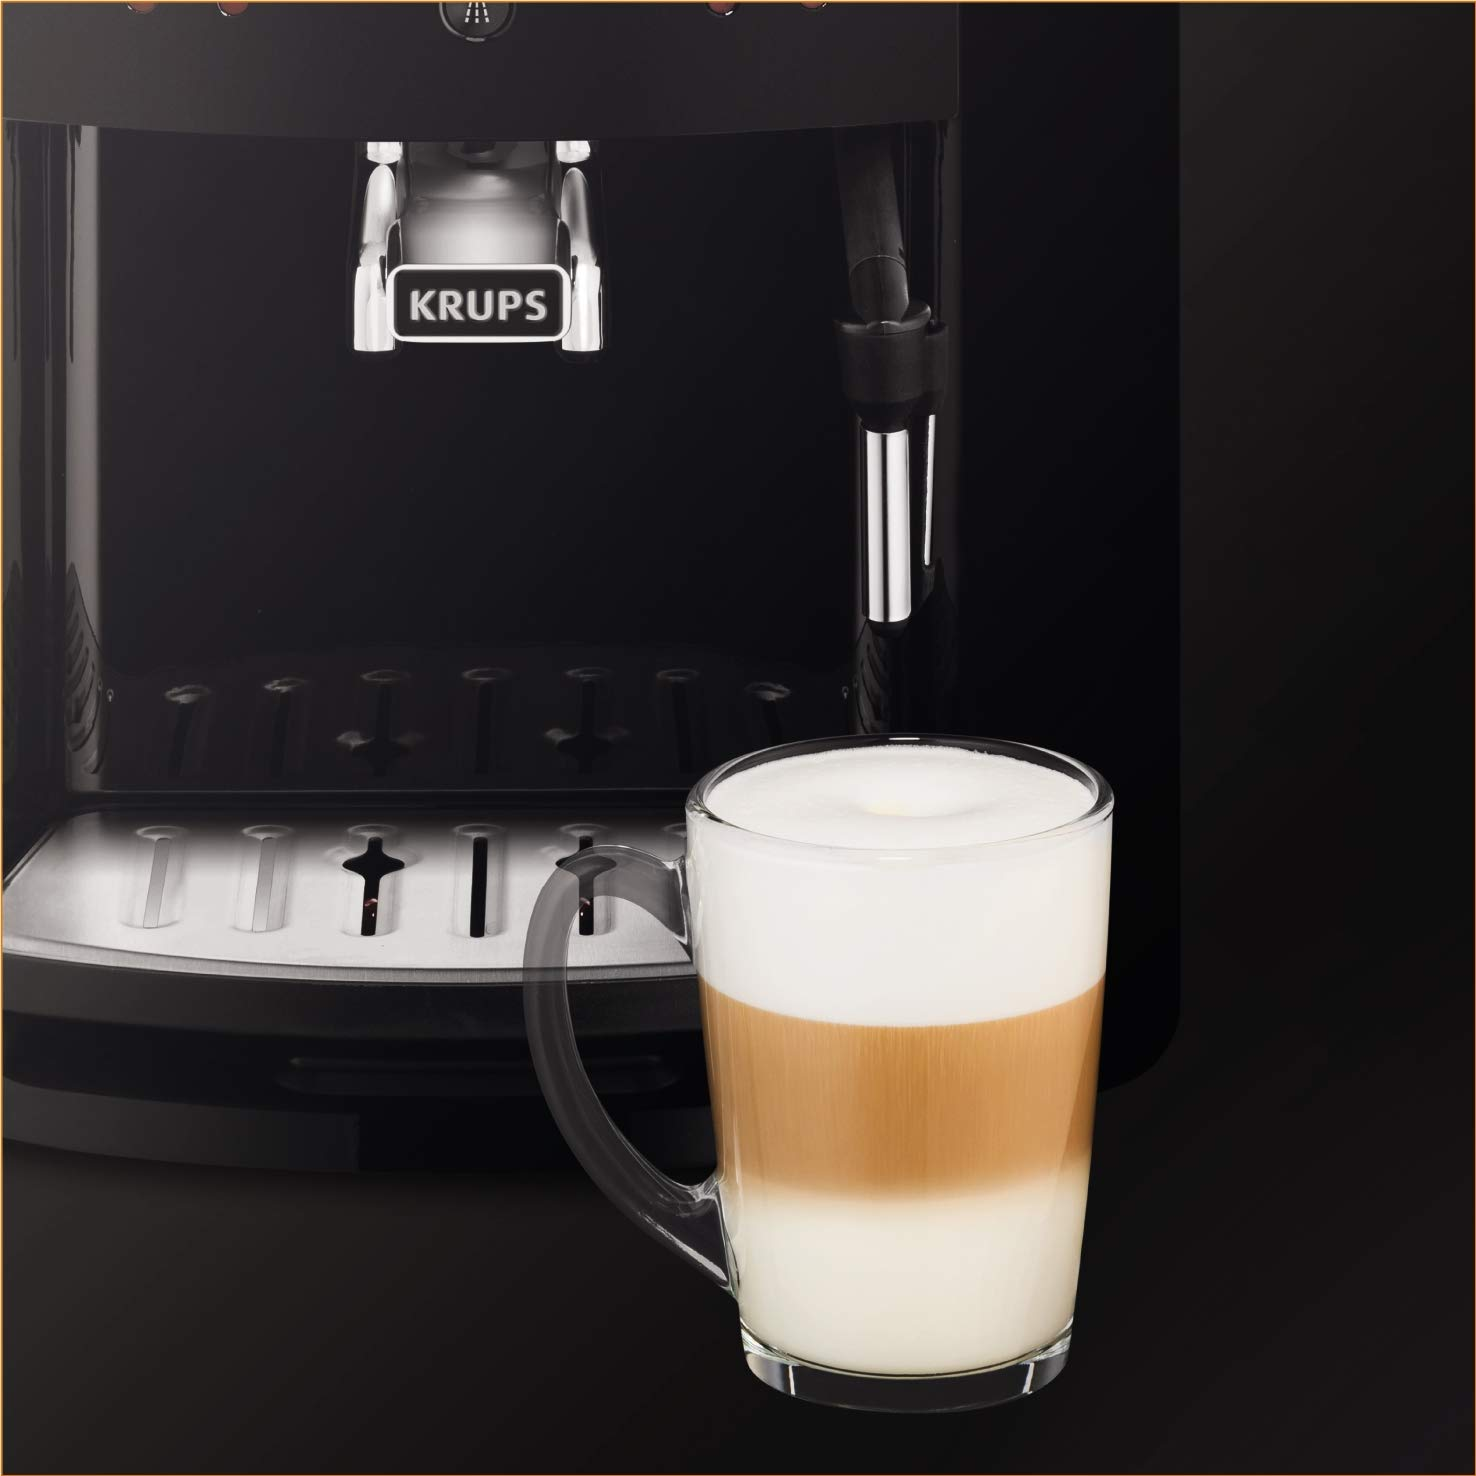 Krups-Arabica-Coffee-Machine-1450-W